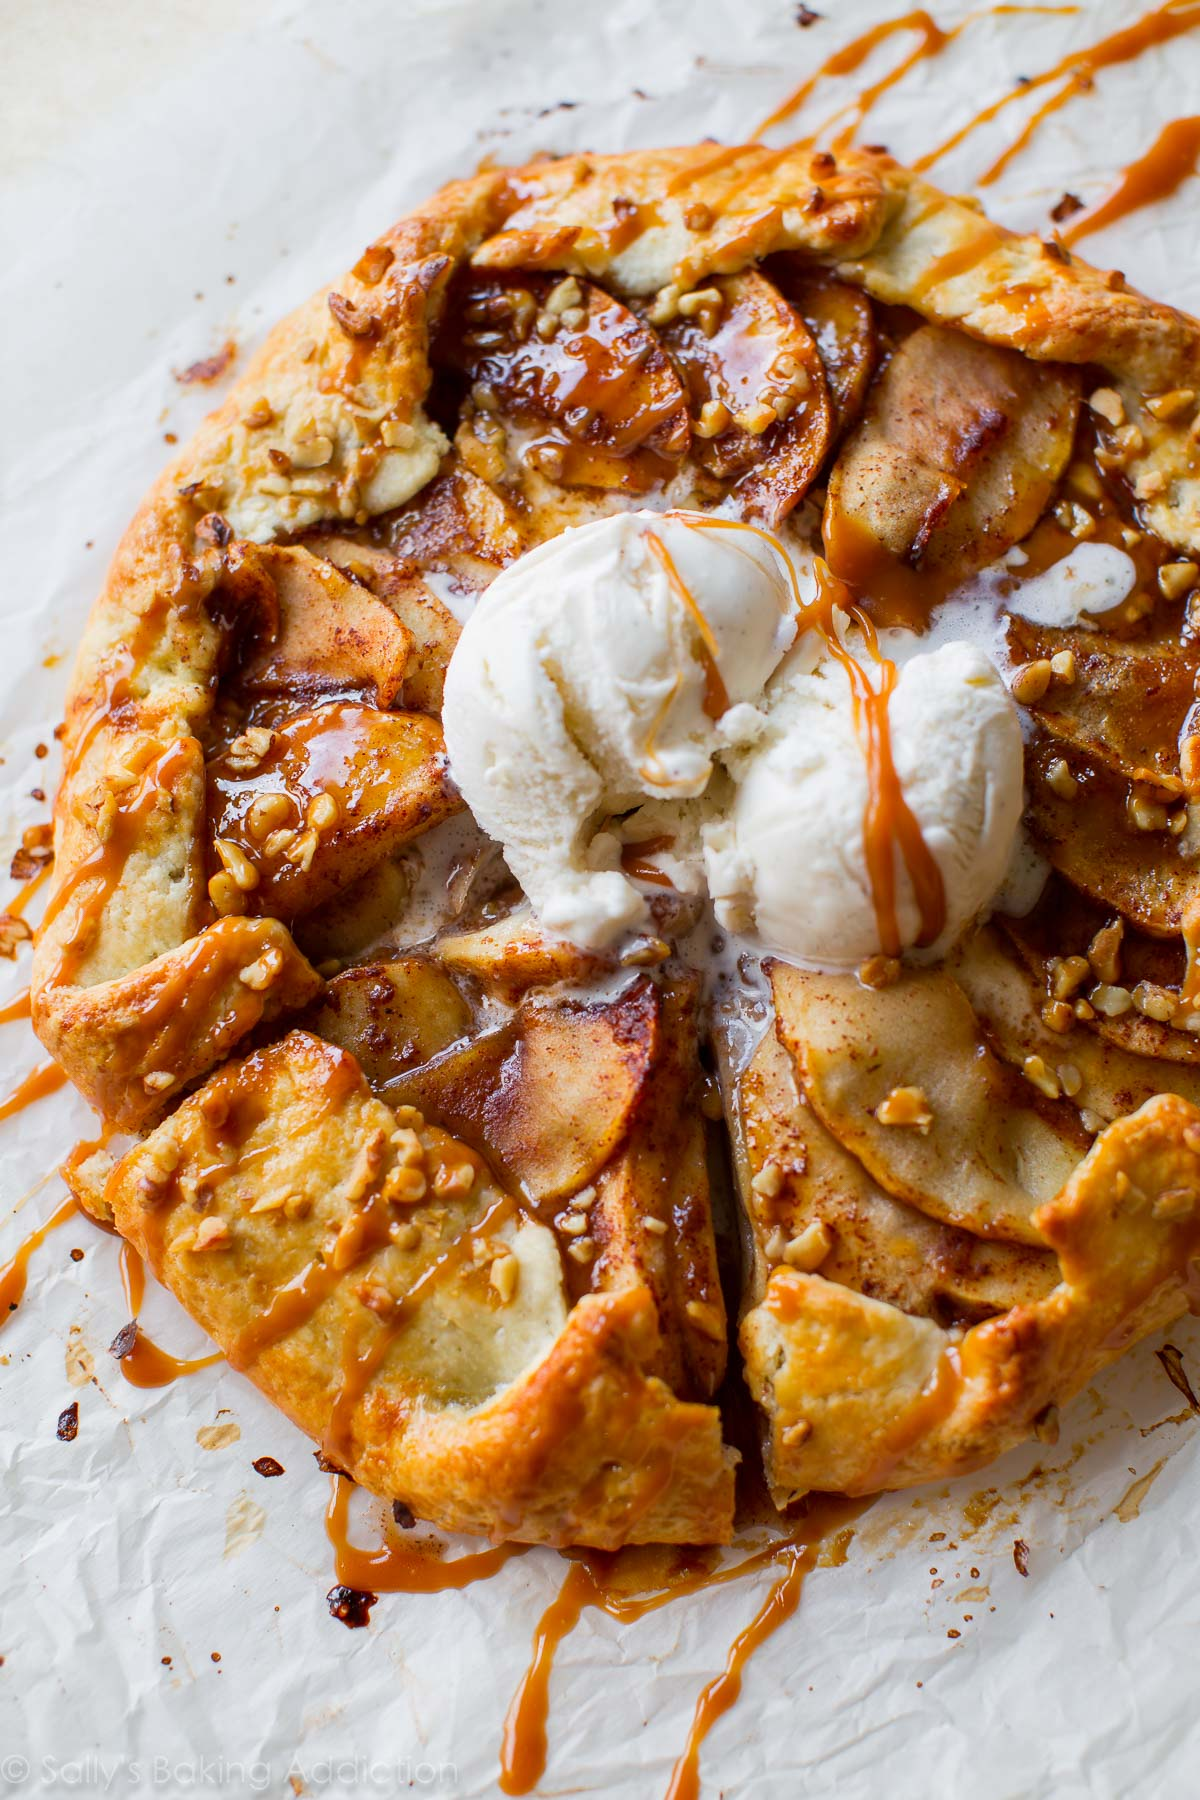 Best fall dessert recipes: Salted Caramel Apple Galette